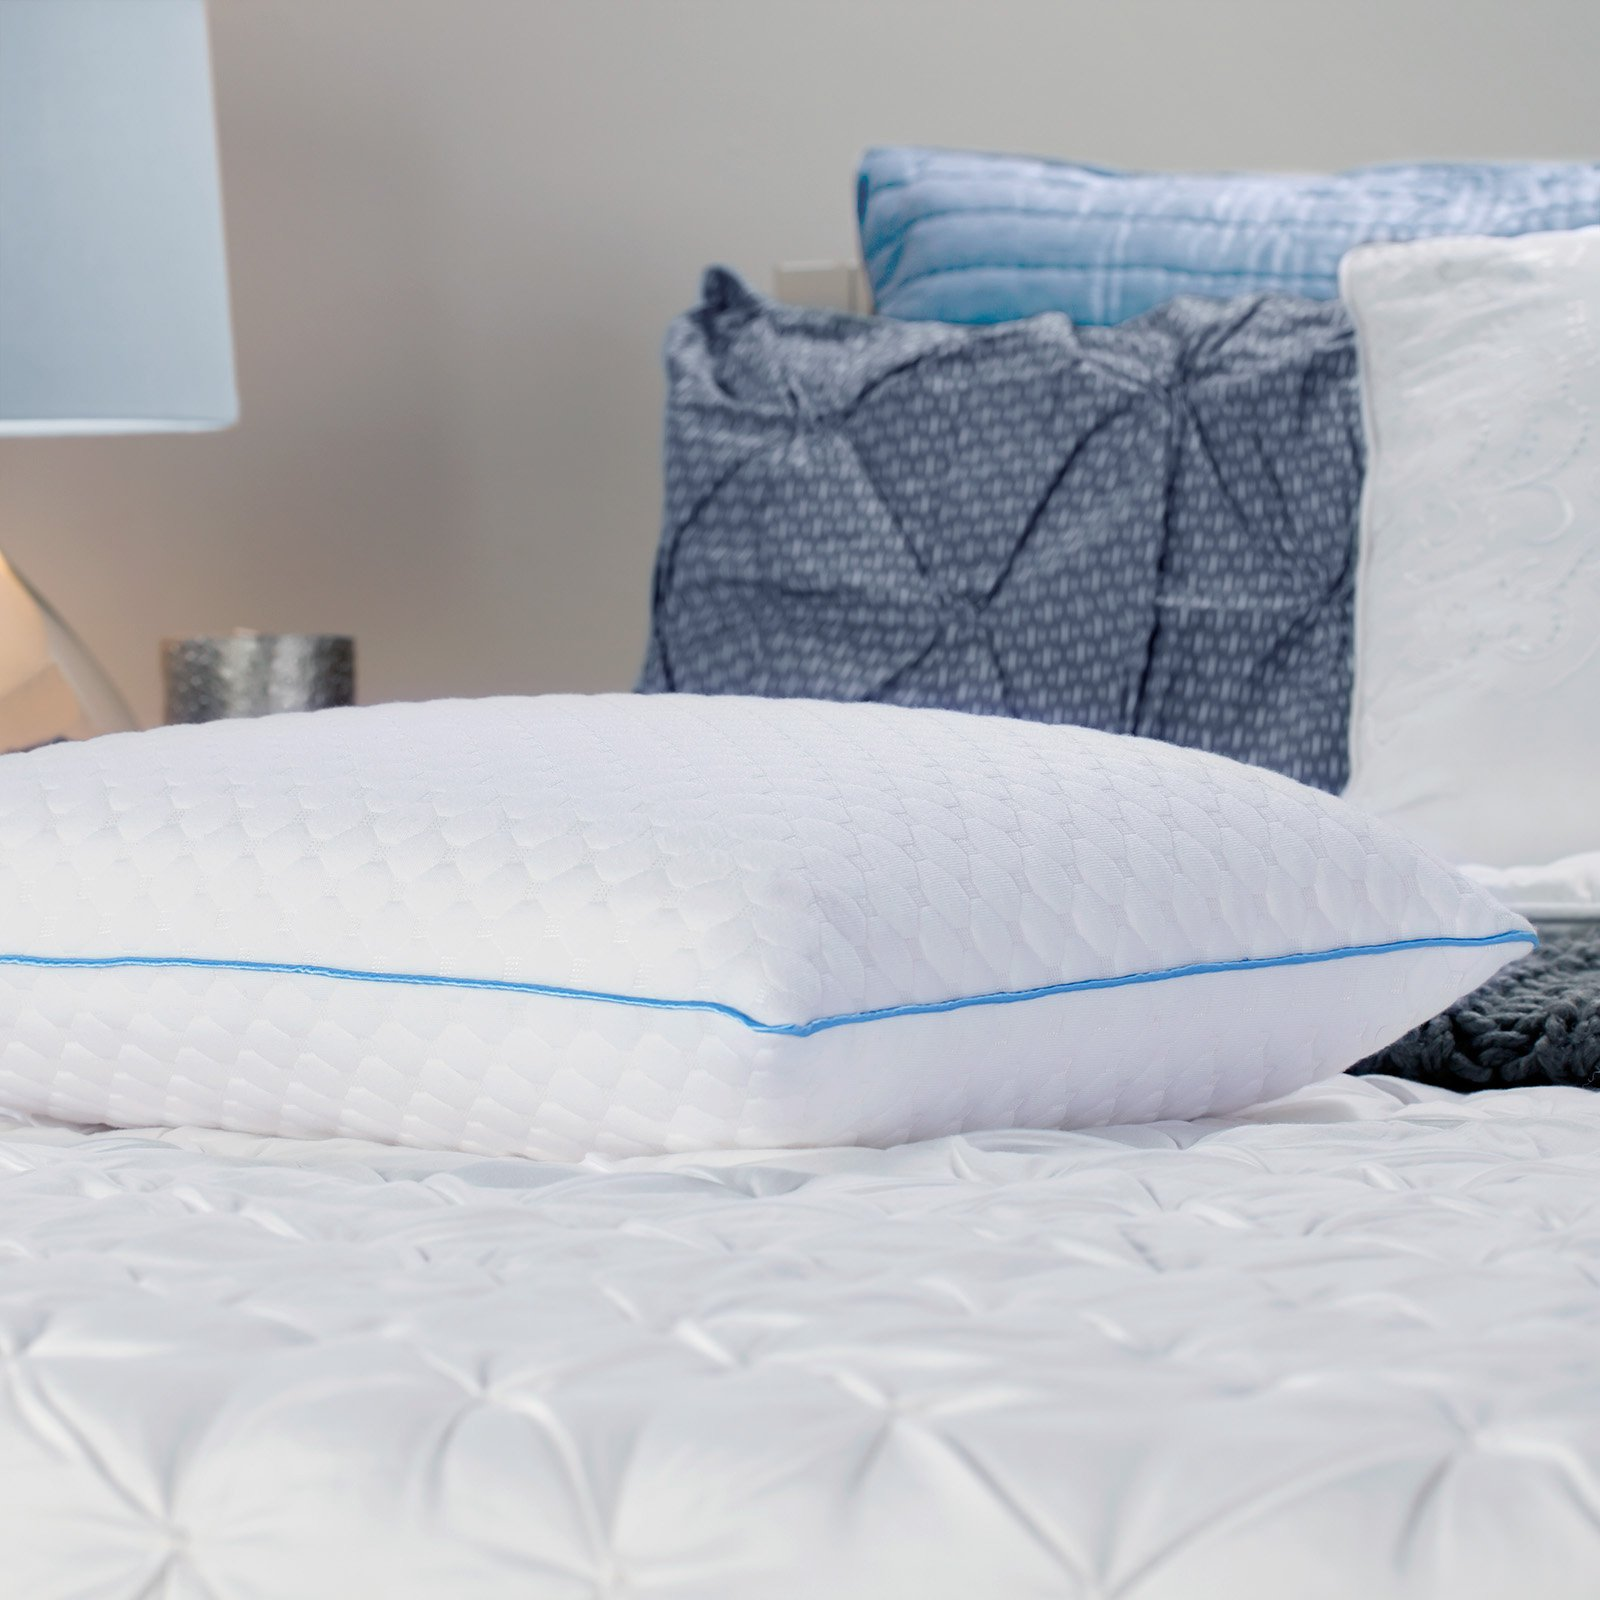 ultraluxe comfort logo products cover pillow white gel foam memory revolution comforter pillows no open